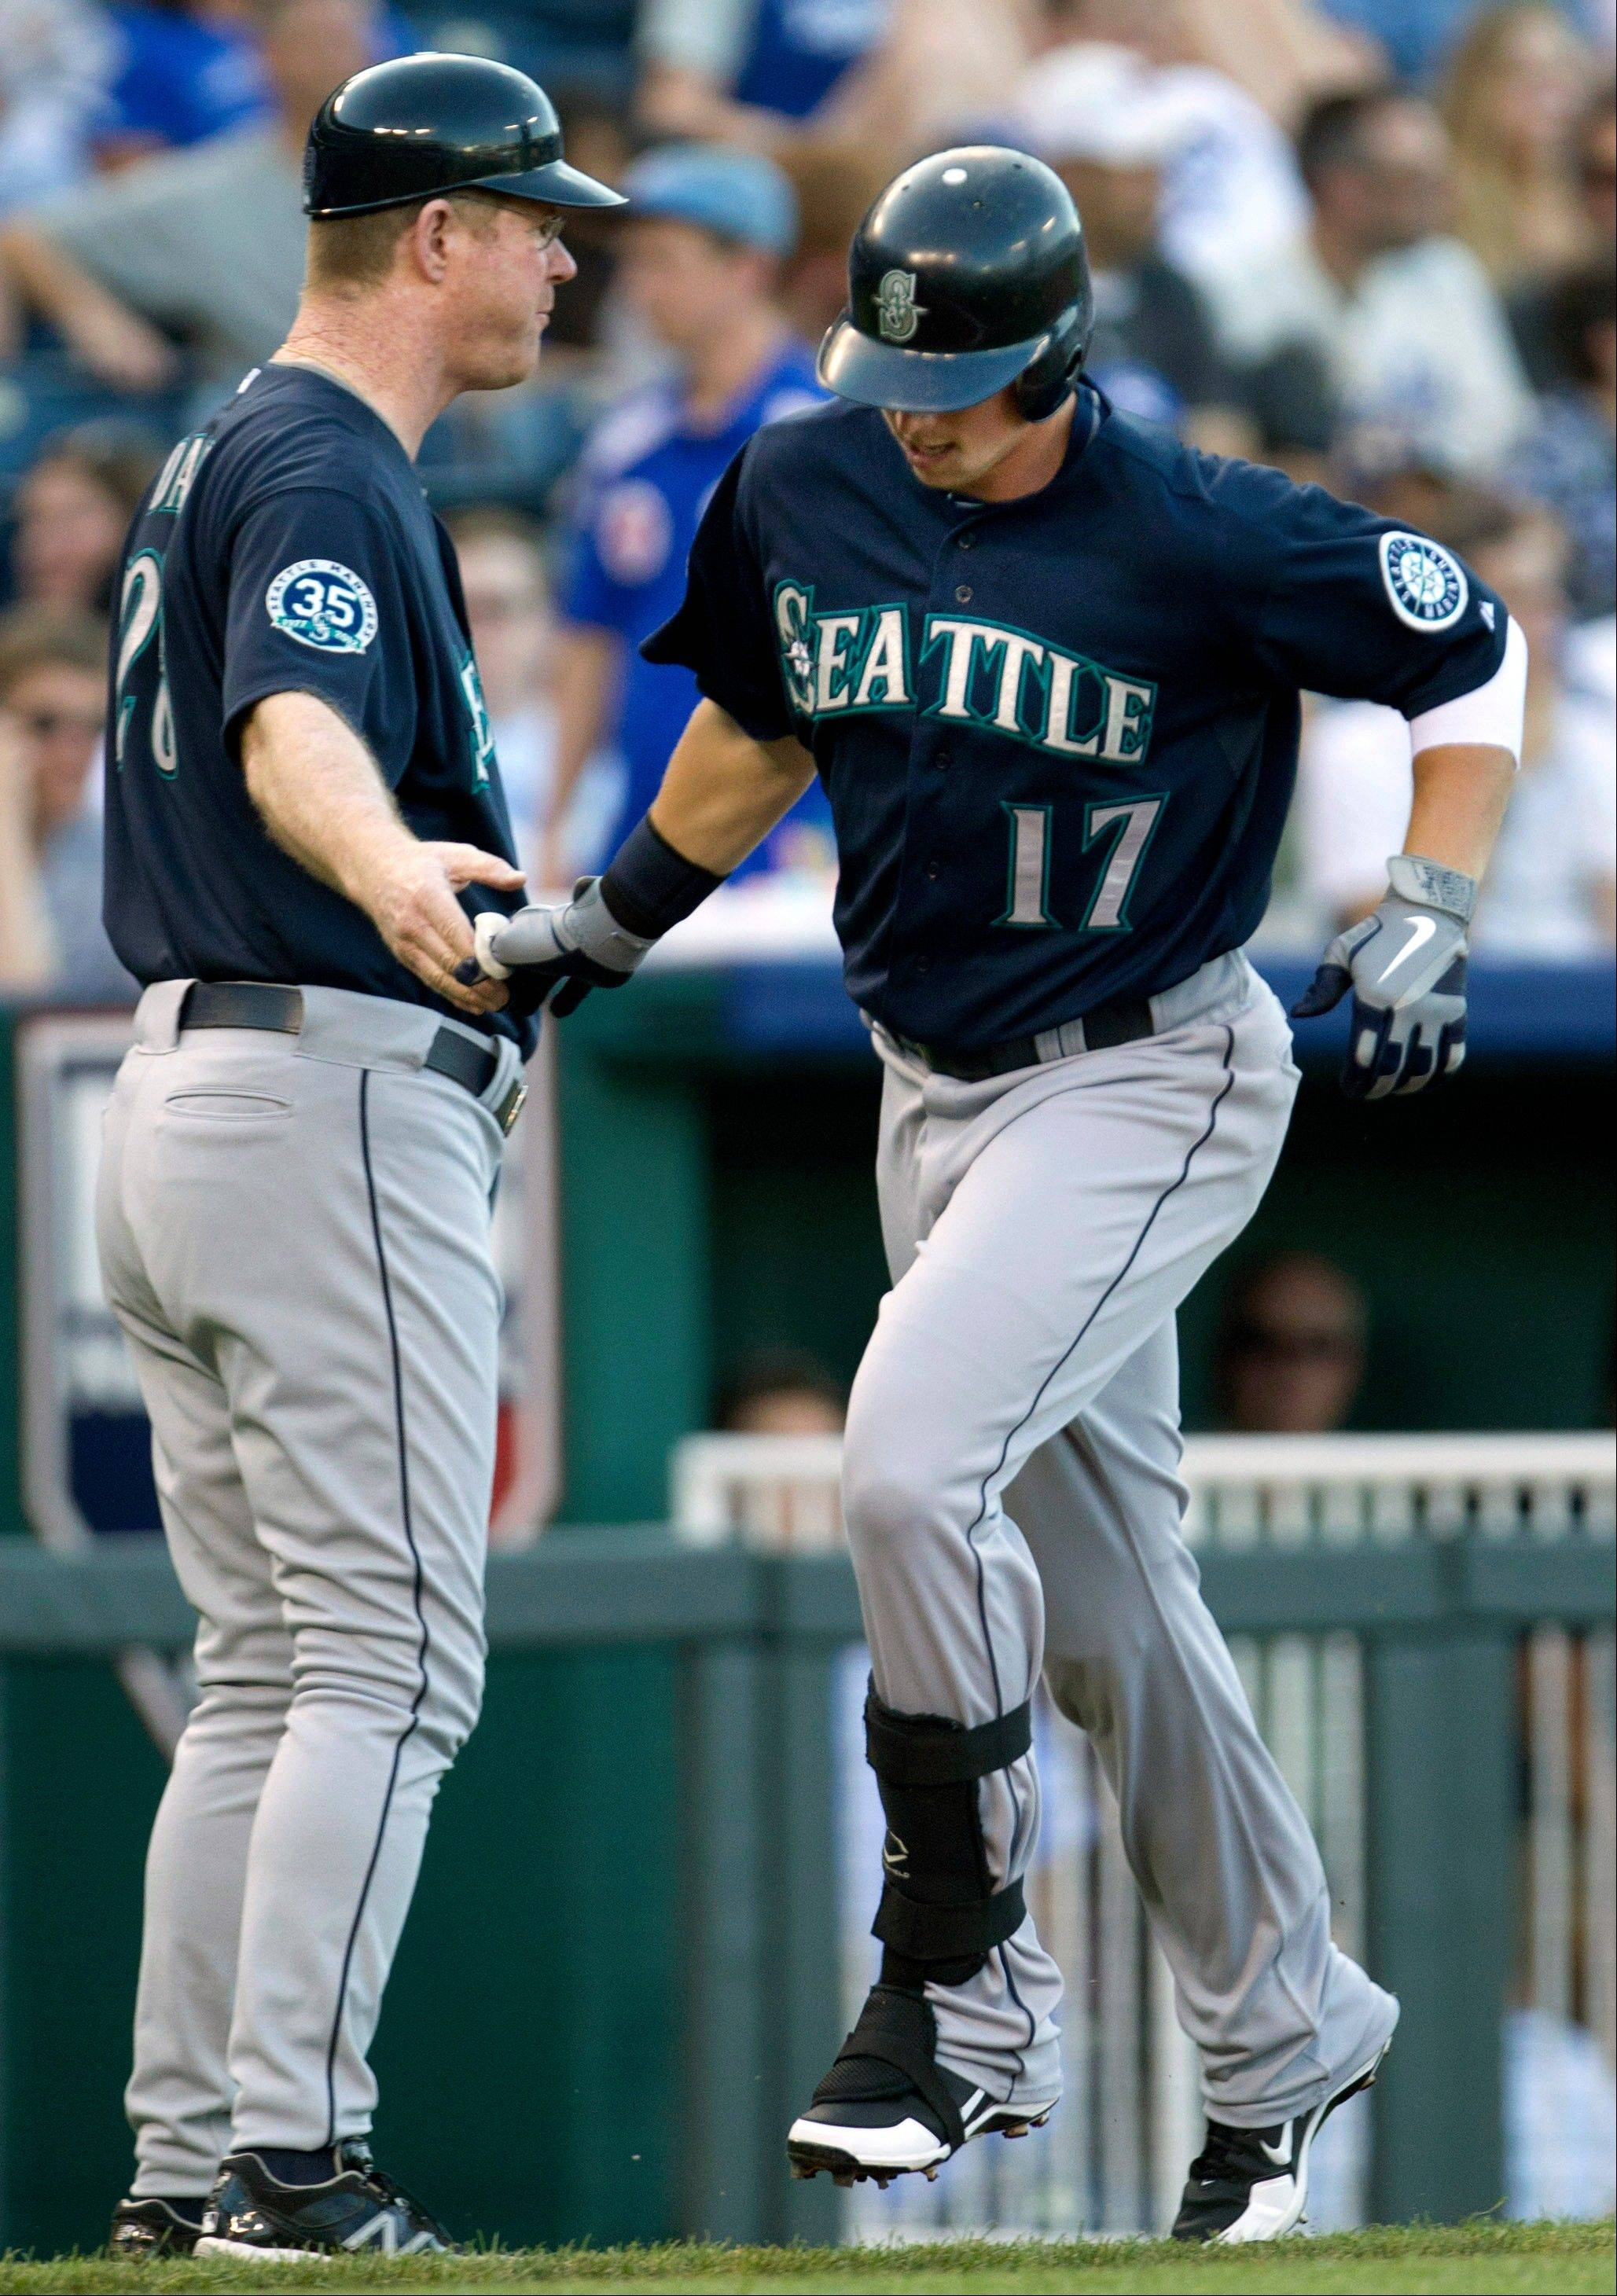 The Seattle Mariners' Justin Smoak (17) is congratulated by third base coach Jeff Datz Tuesday after his two-run home run off Kansas City Royals starting pitcher Ryan Verdugo during the first inning at Kauffman Stadium in Kansas City, Mo.